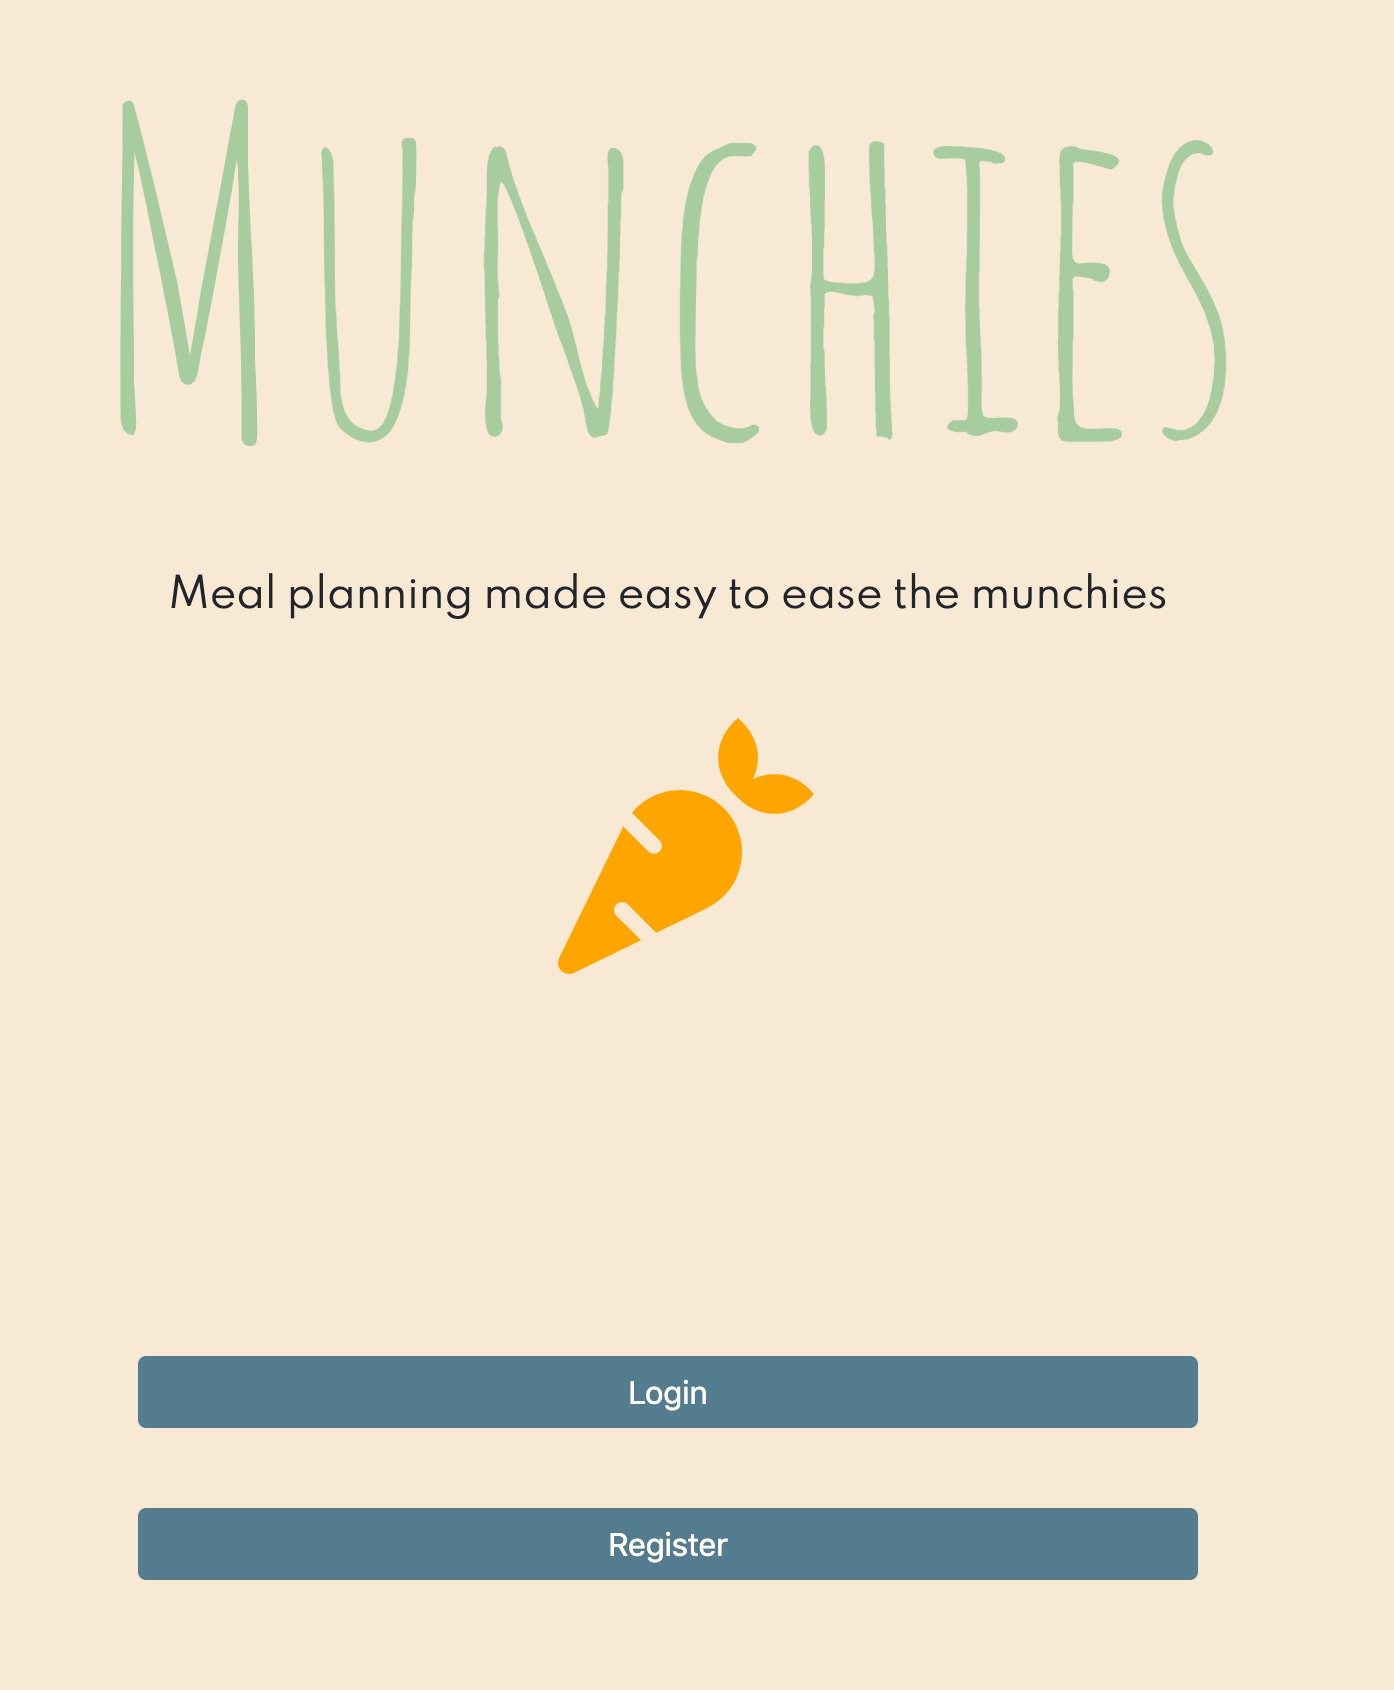 Munchies - LA HACKS 2020